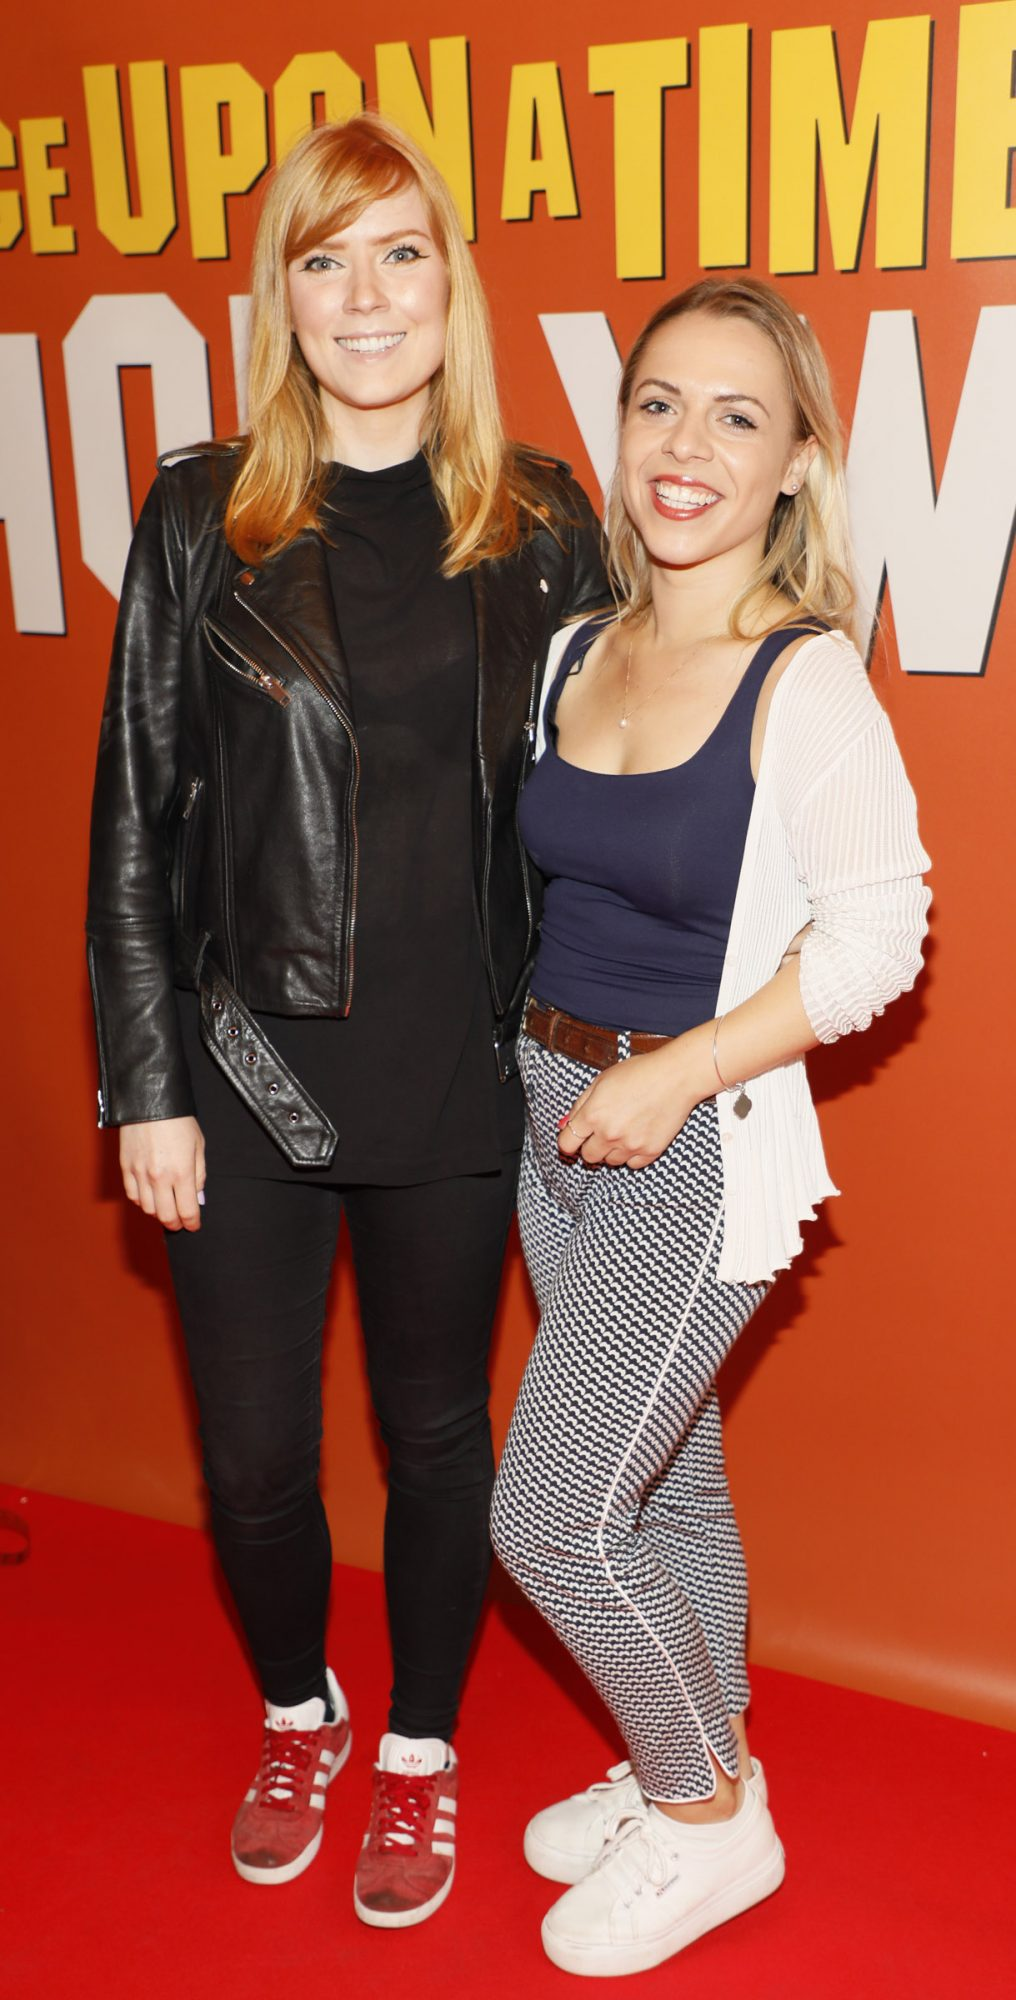 Aisling Chubb and Ysabel Pheifer at the Multimedia Screening of Once Upon A Time In Hollywood at the Stella Theatre, Rathmines, in cinema August 14th. Photo: Kieran Harnett